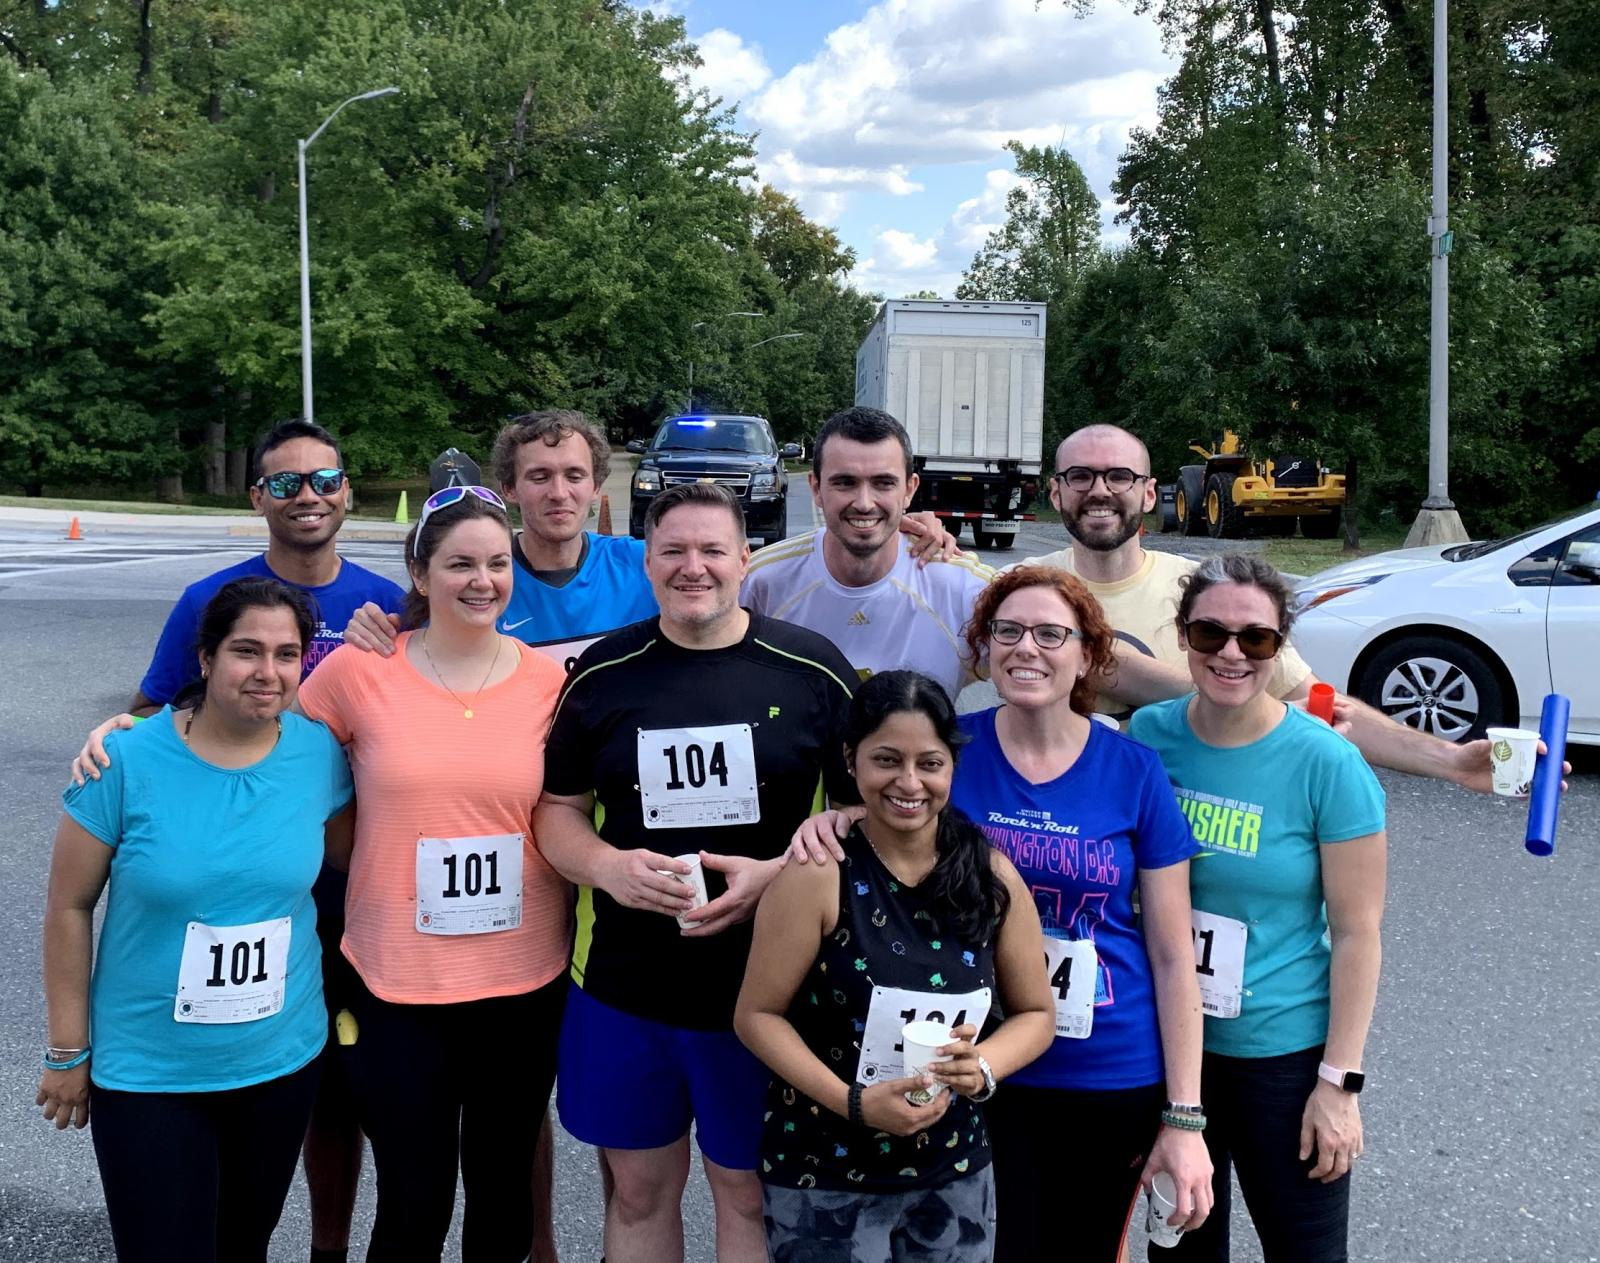 NNRL members competed in the 26th annual NIH relay